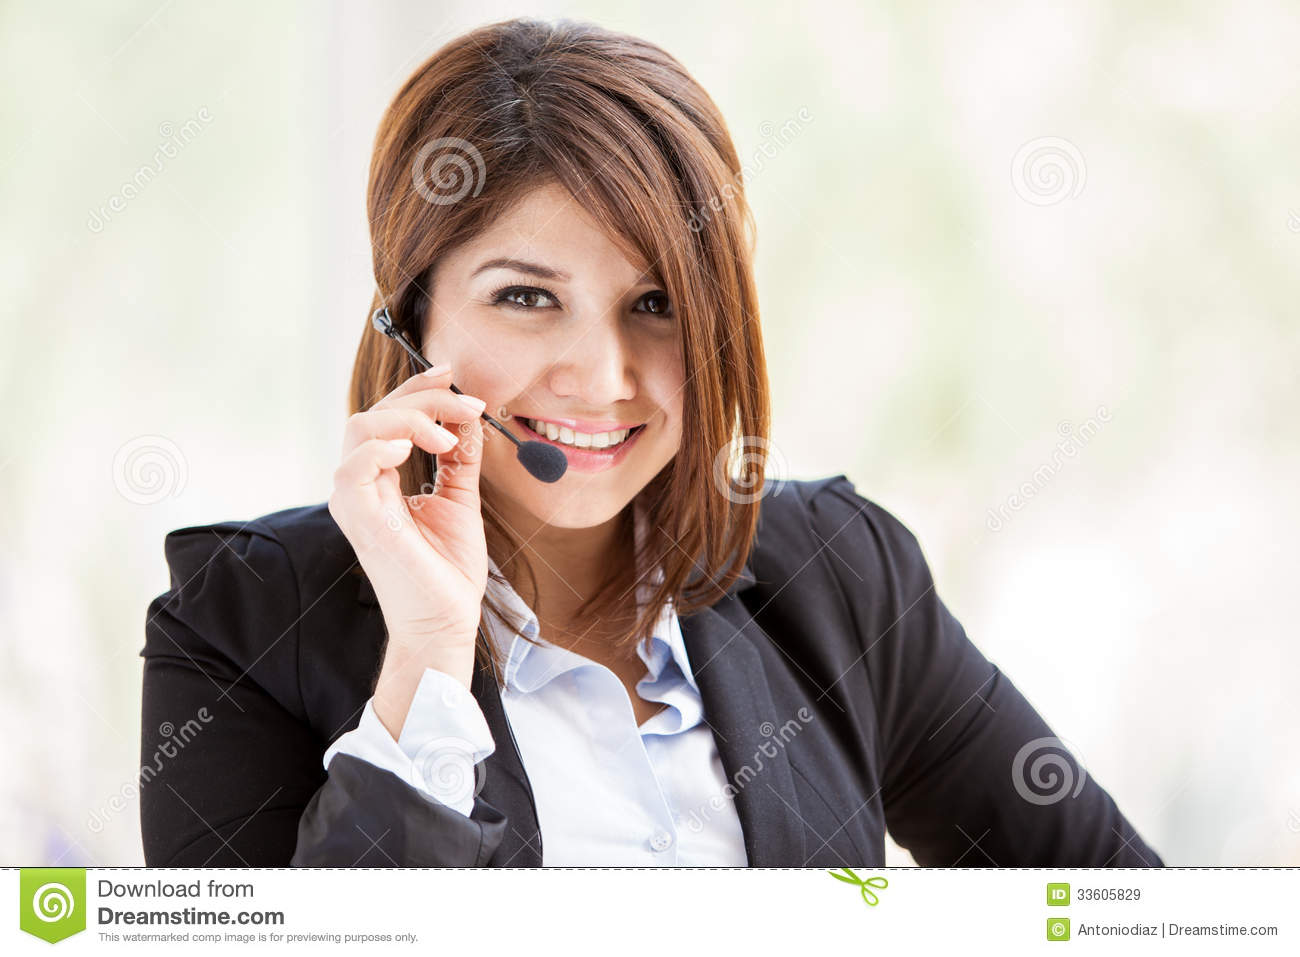 Customer Service With A Smile Stock Image